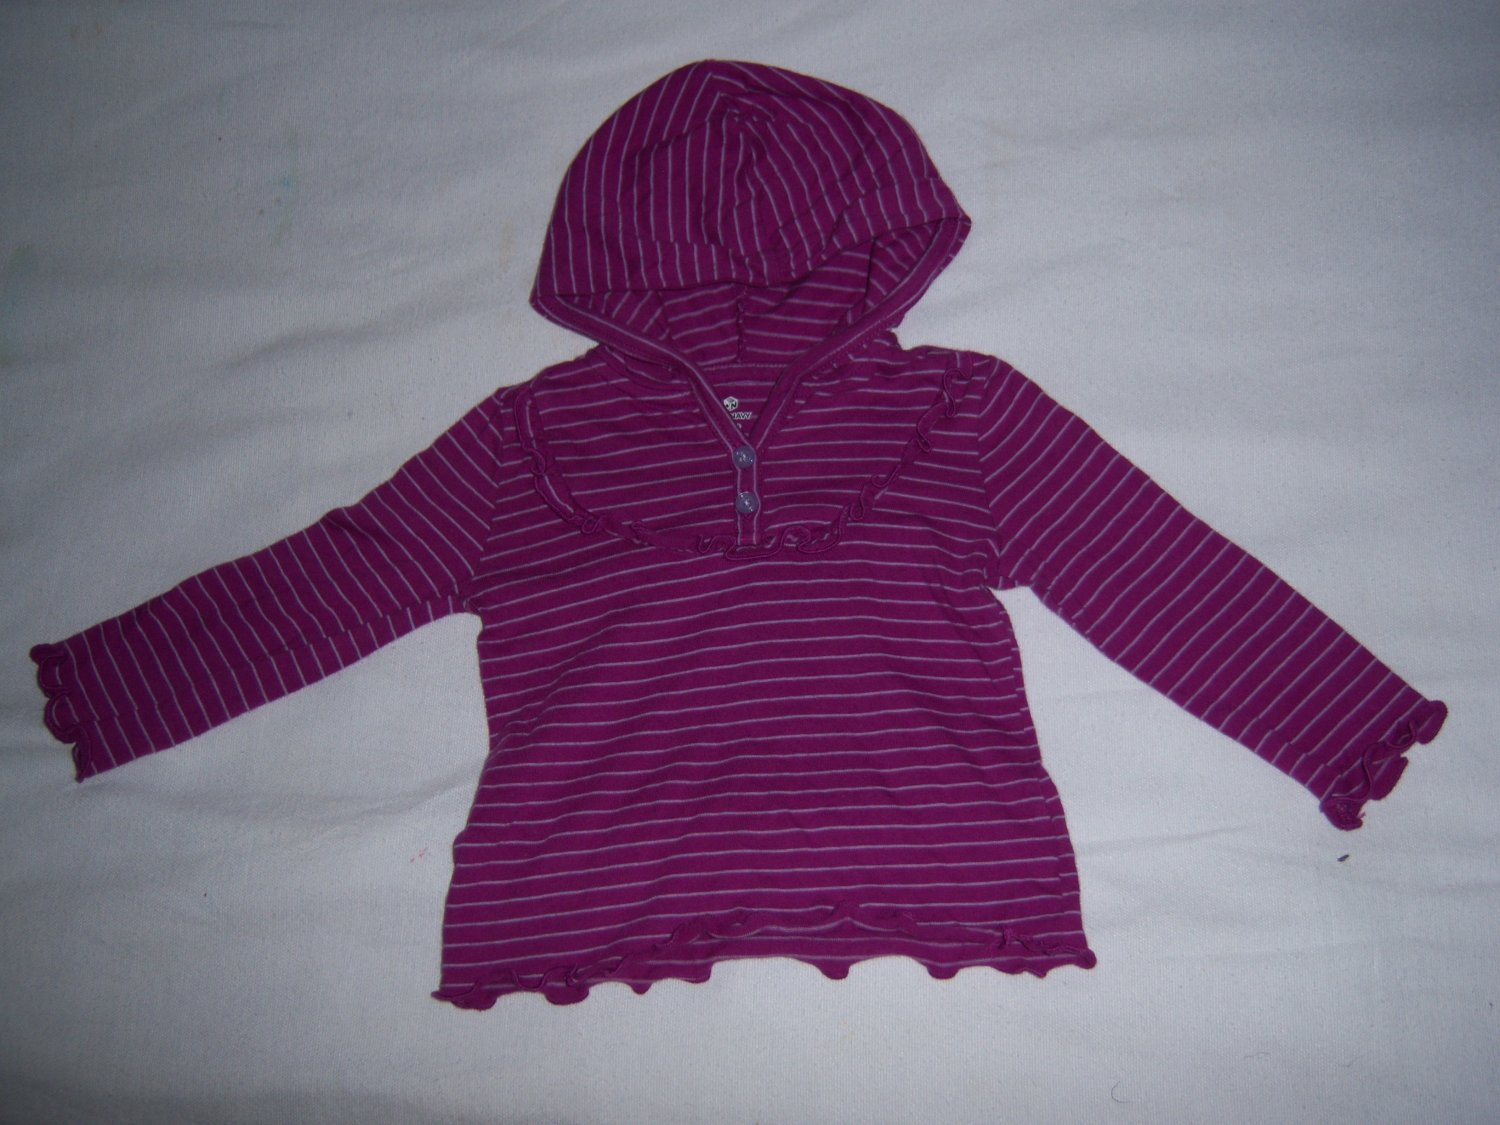 OLD NAVY INFANY BABY GIRLS PURPLE HOODIE SHIRT 6-12 MONTHS